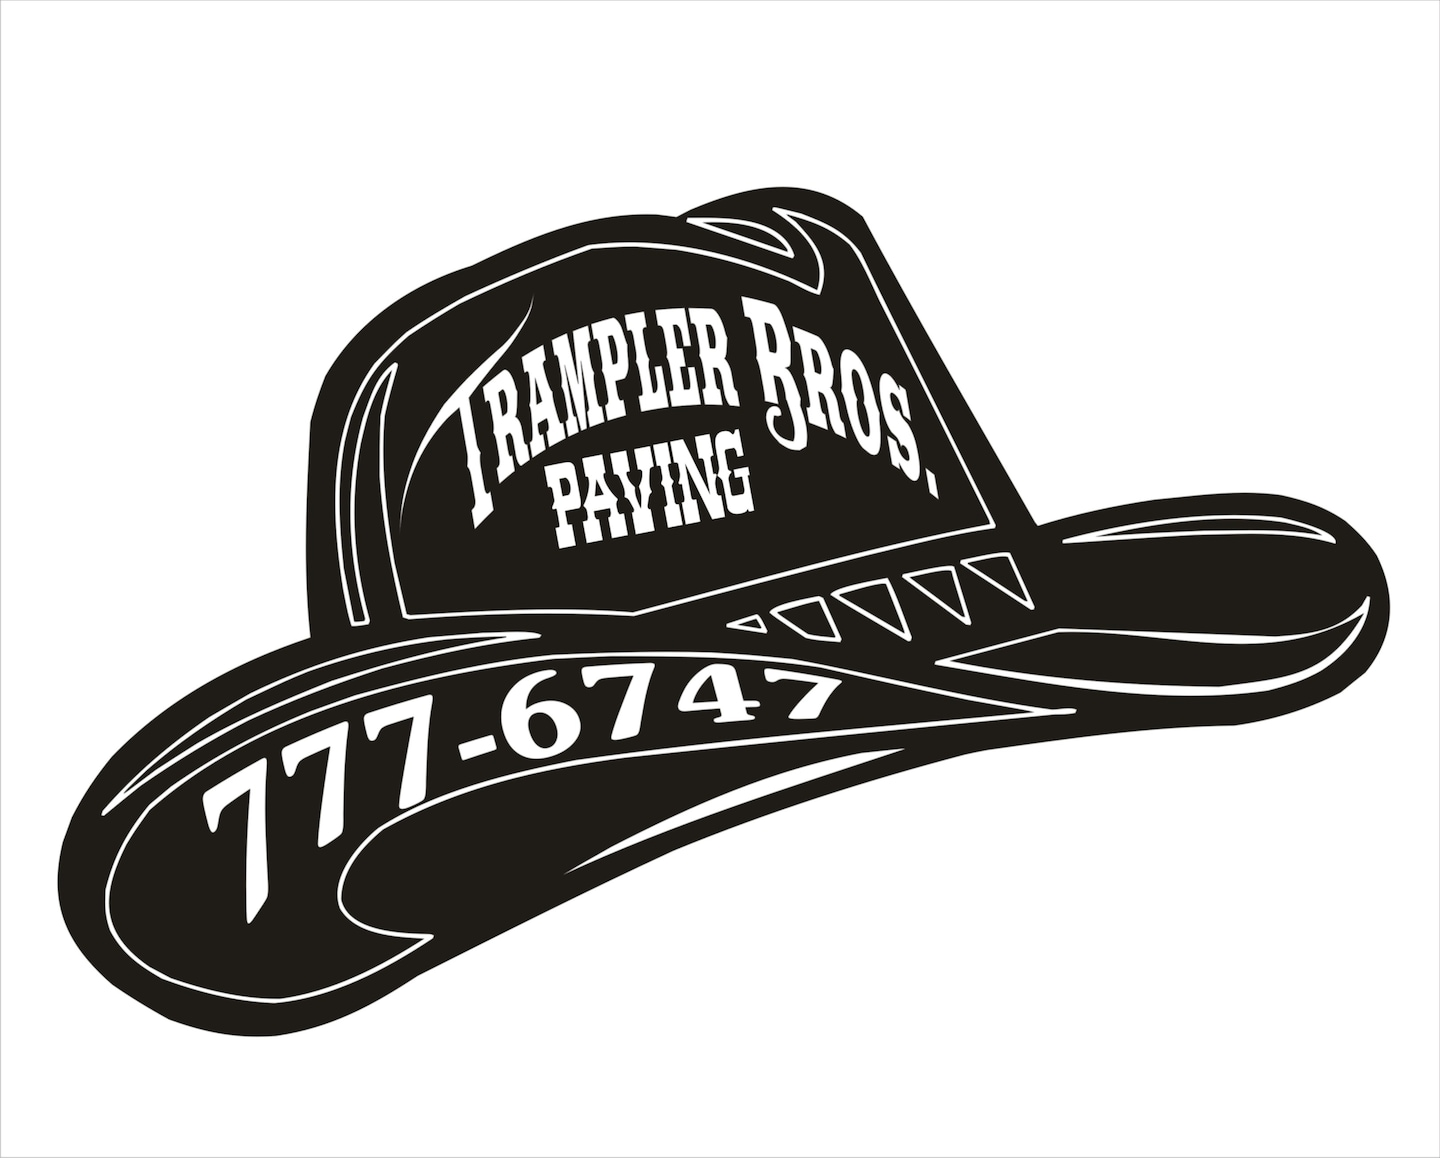 TRAMPLER BROTHERS PAVING